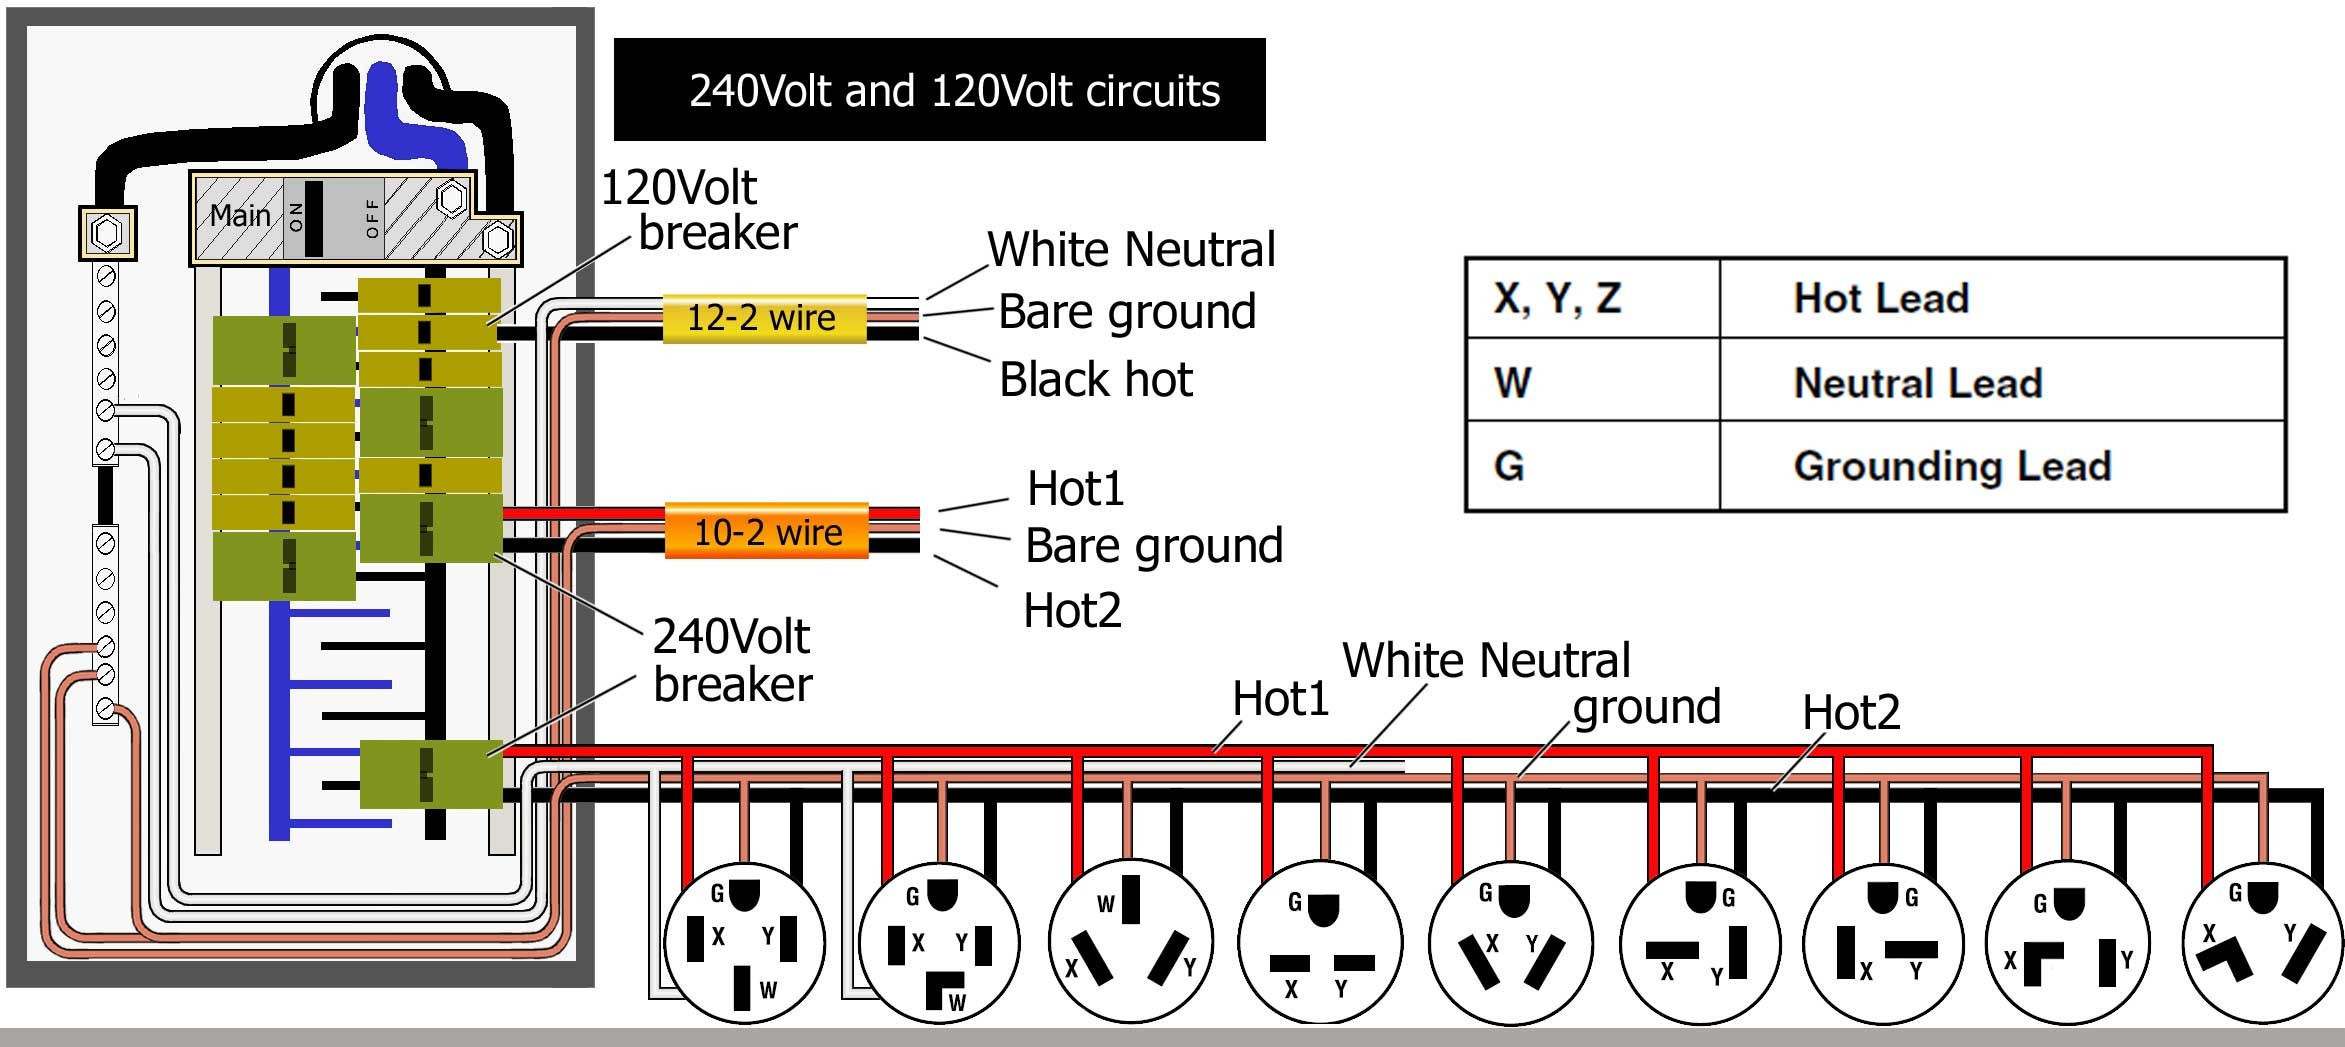 images?q=tbn:ANd9GcQh_l3eQ5xwiPy07kGEXjmjgmBKBRB7H2mRxCGhv1tFWg5c_mWT Wire Diagram For 3 Prong Plug